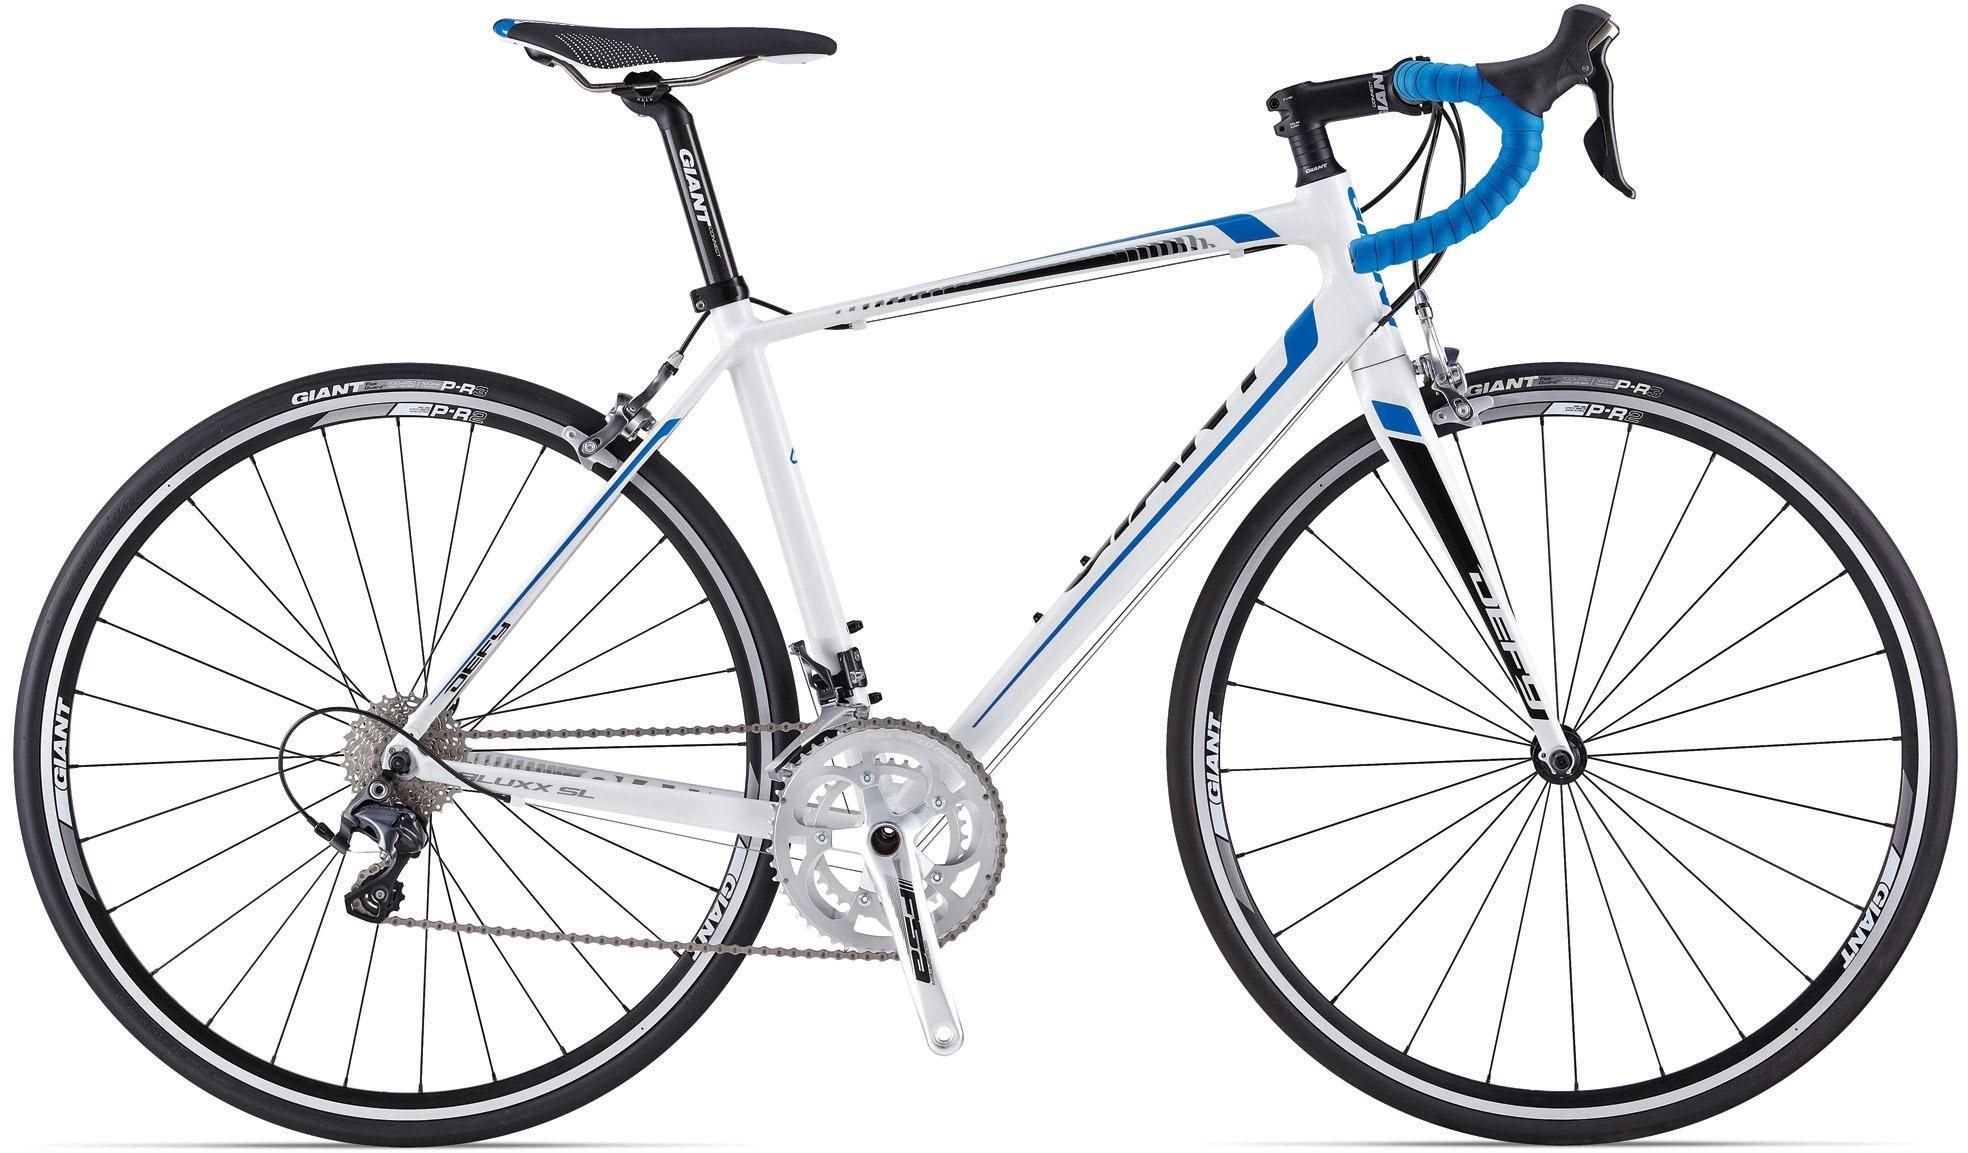 4d8b488e100 Giant Defy 0 2014 review - The Bike List